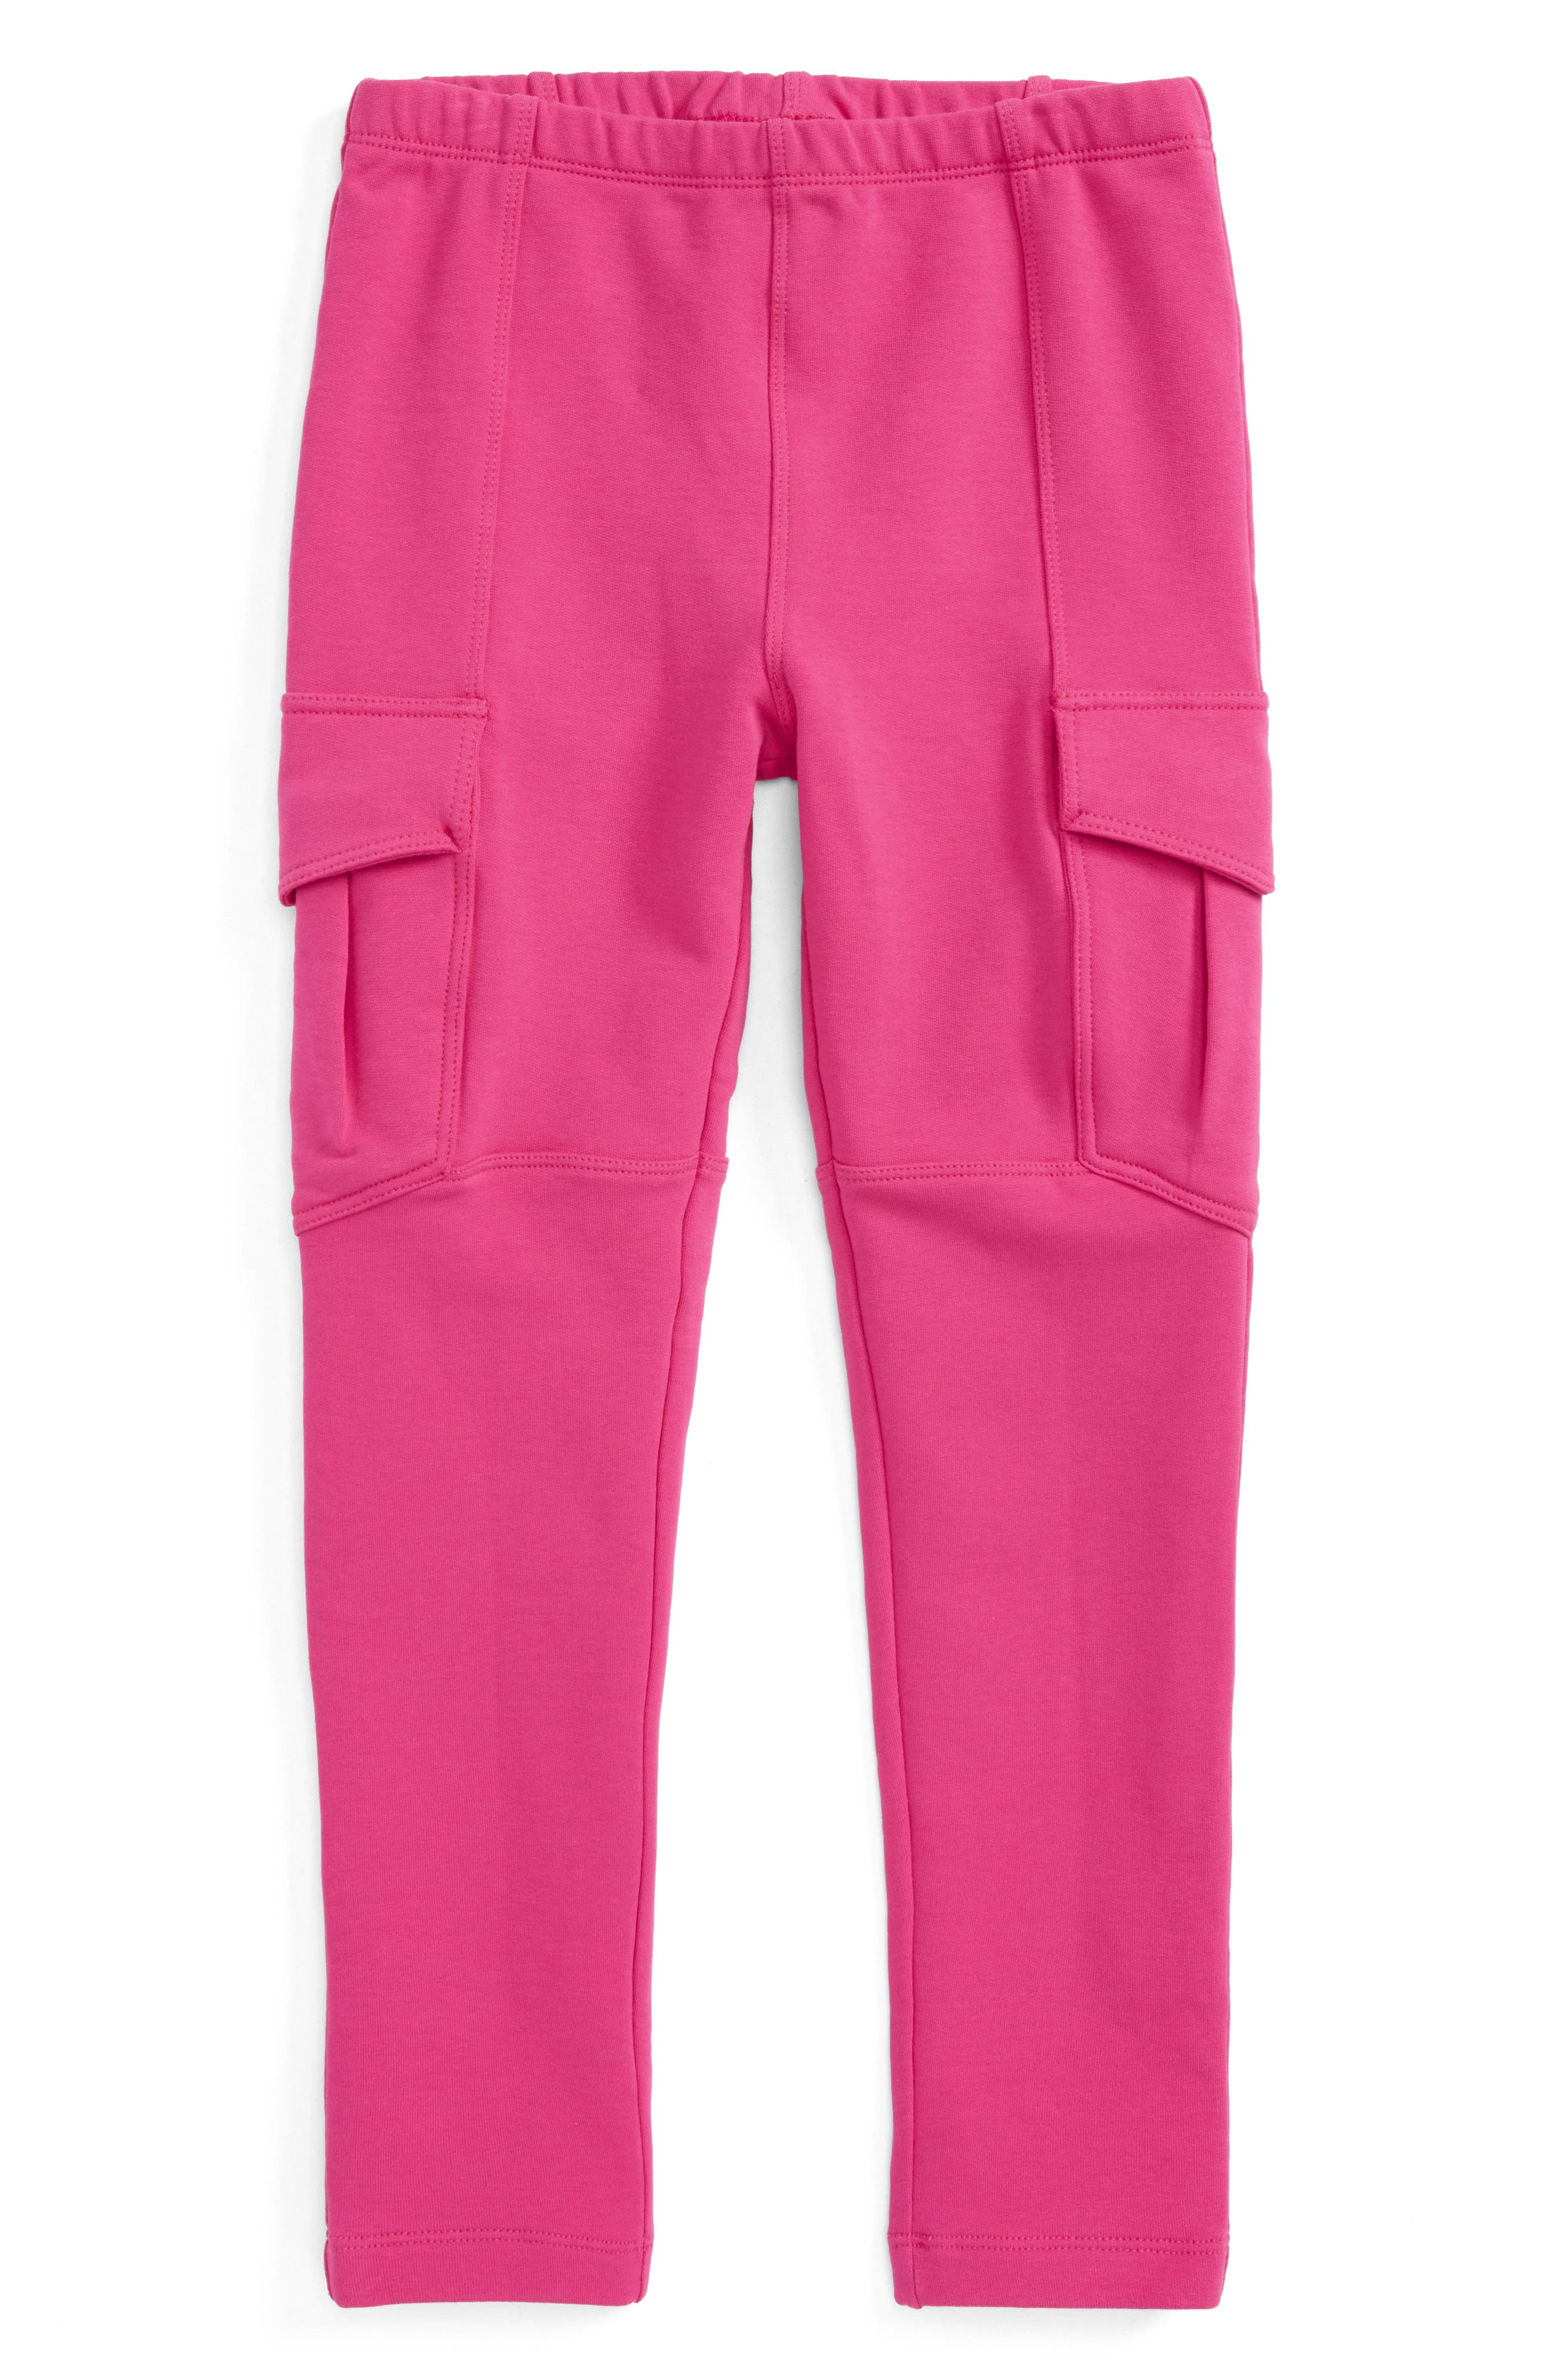 French Terry Cargo Pants,                             Main thumbnail 1, color,                             650